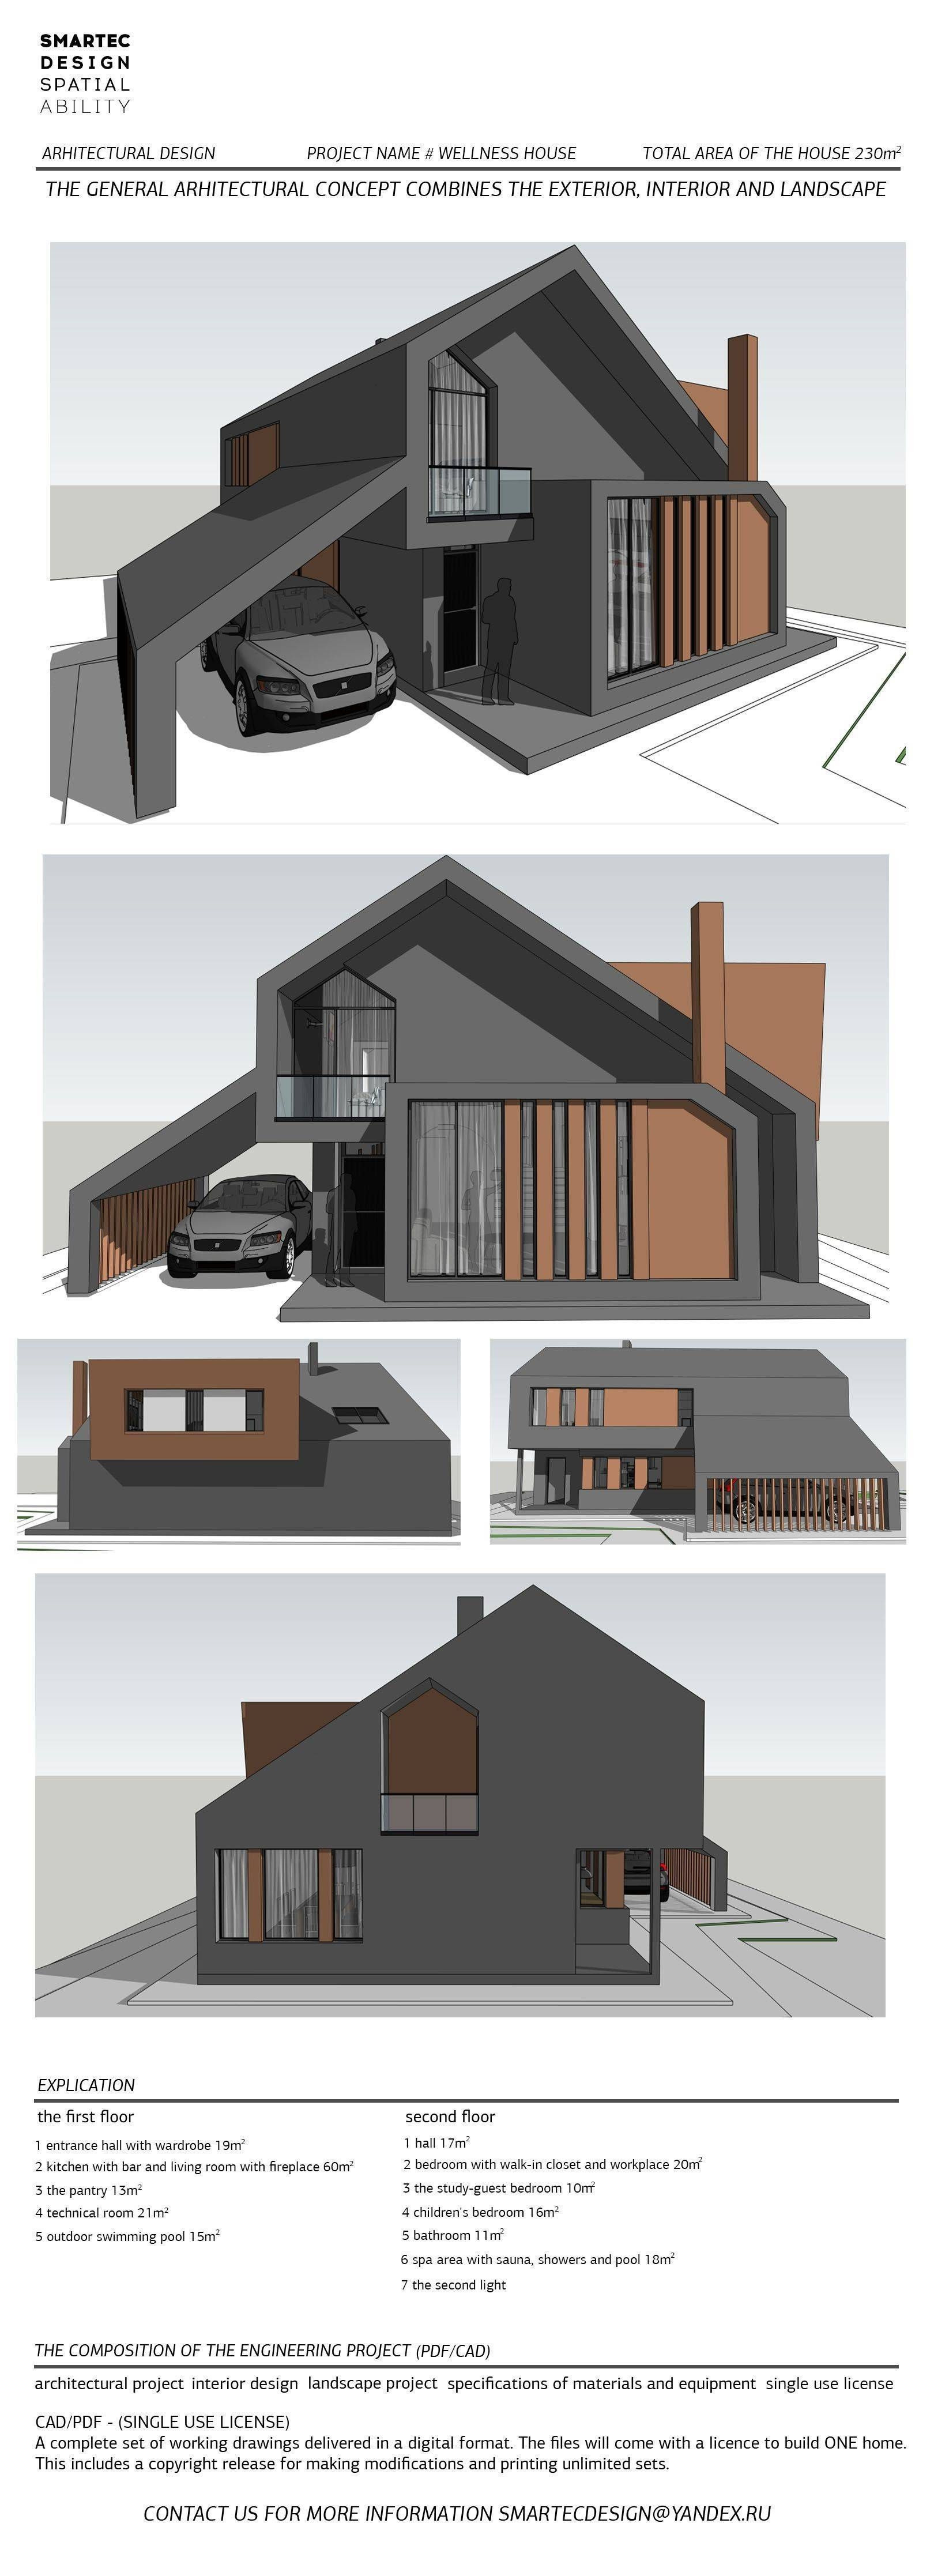 easy house design software lovely 24 new landscape architecture site plan concept of easy house design software